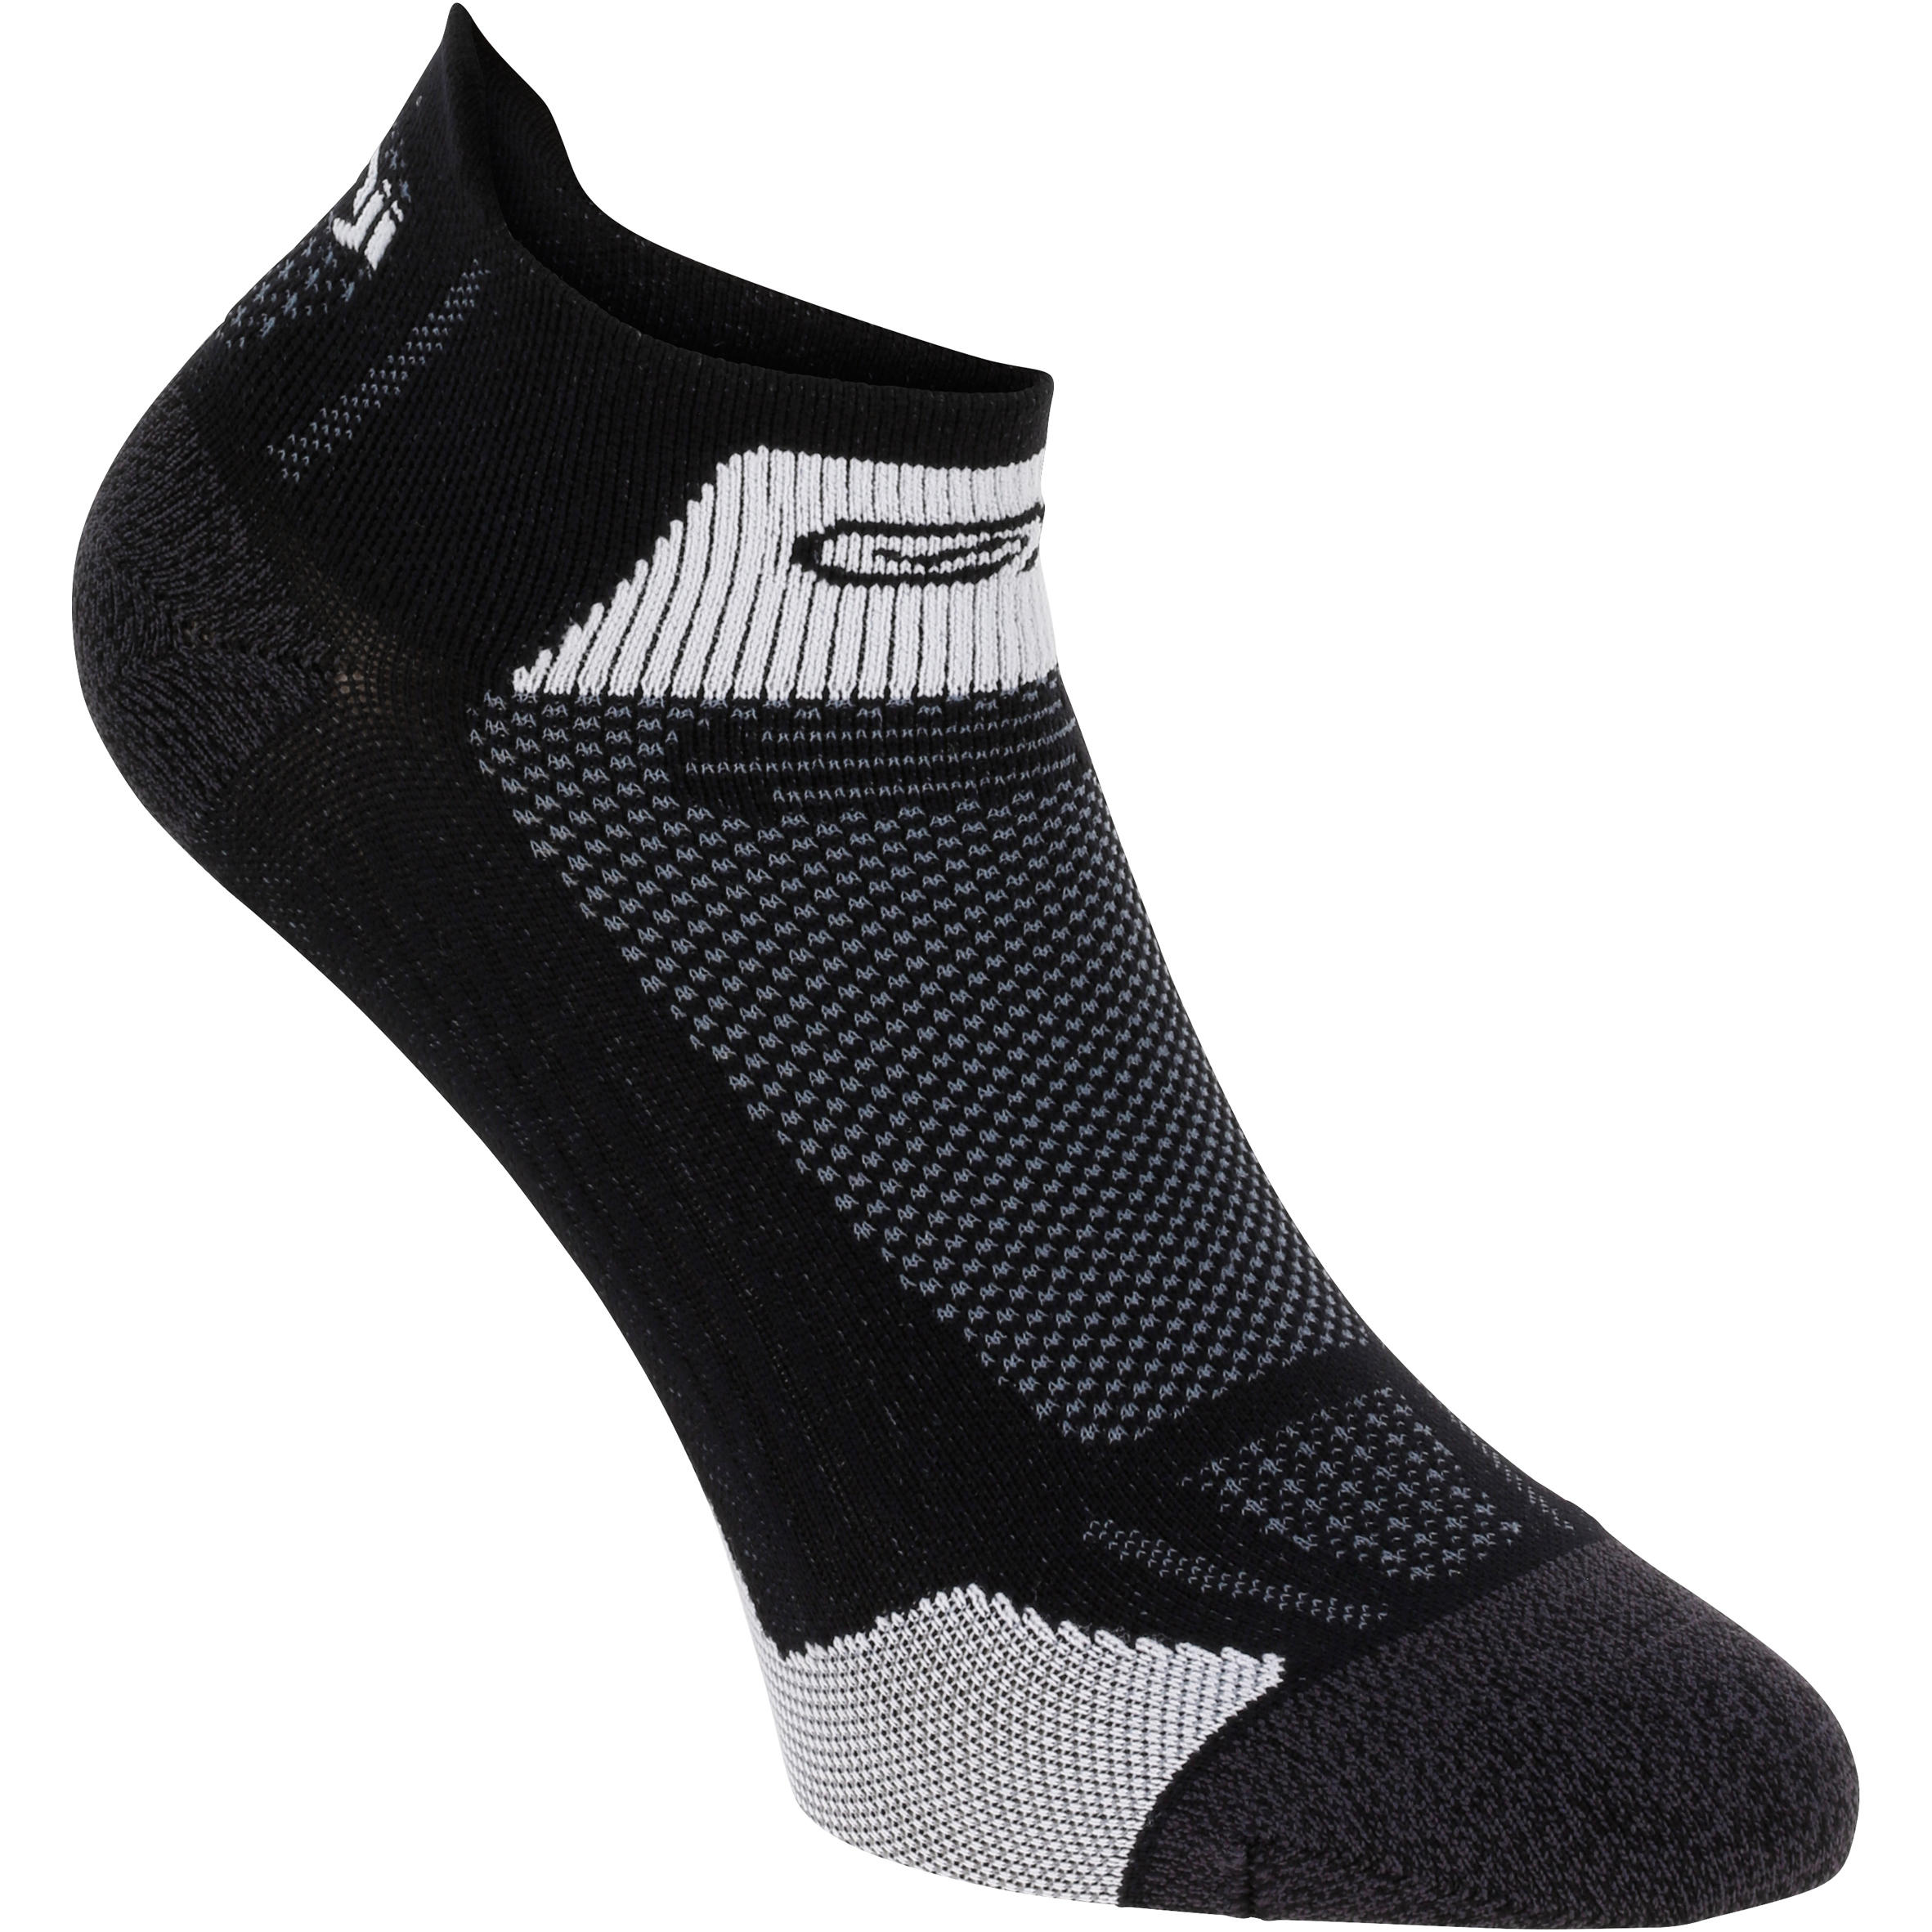 Kiprun Fit Running Socks - Black